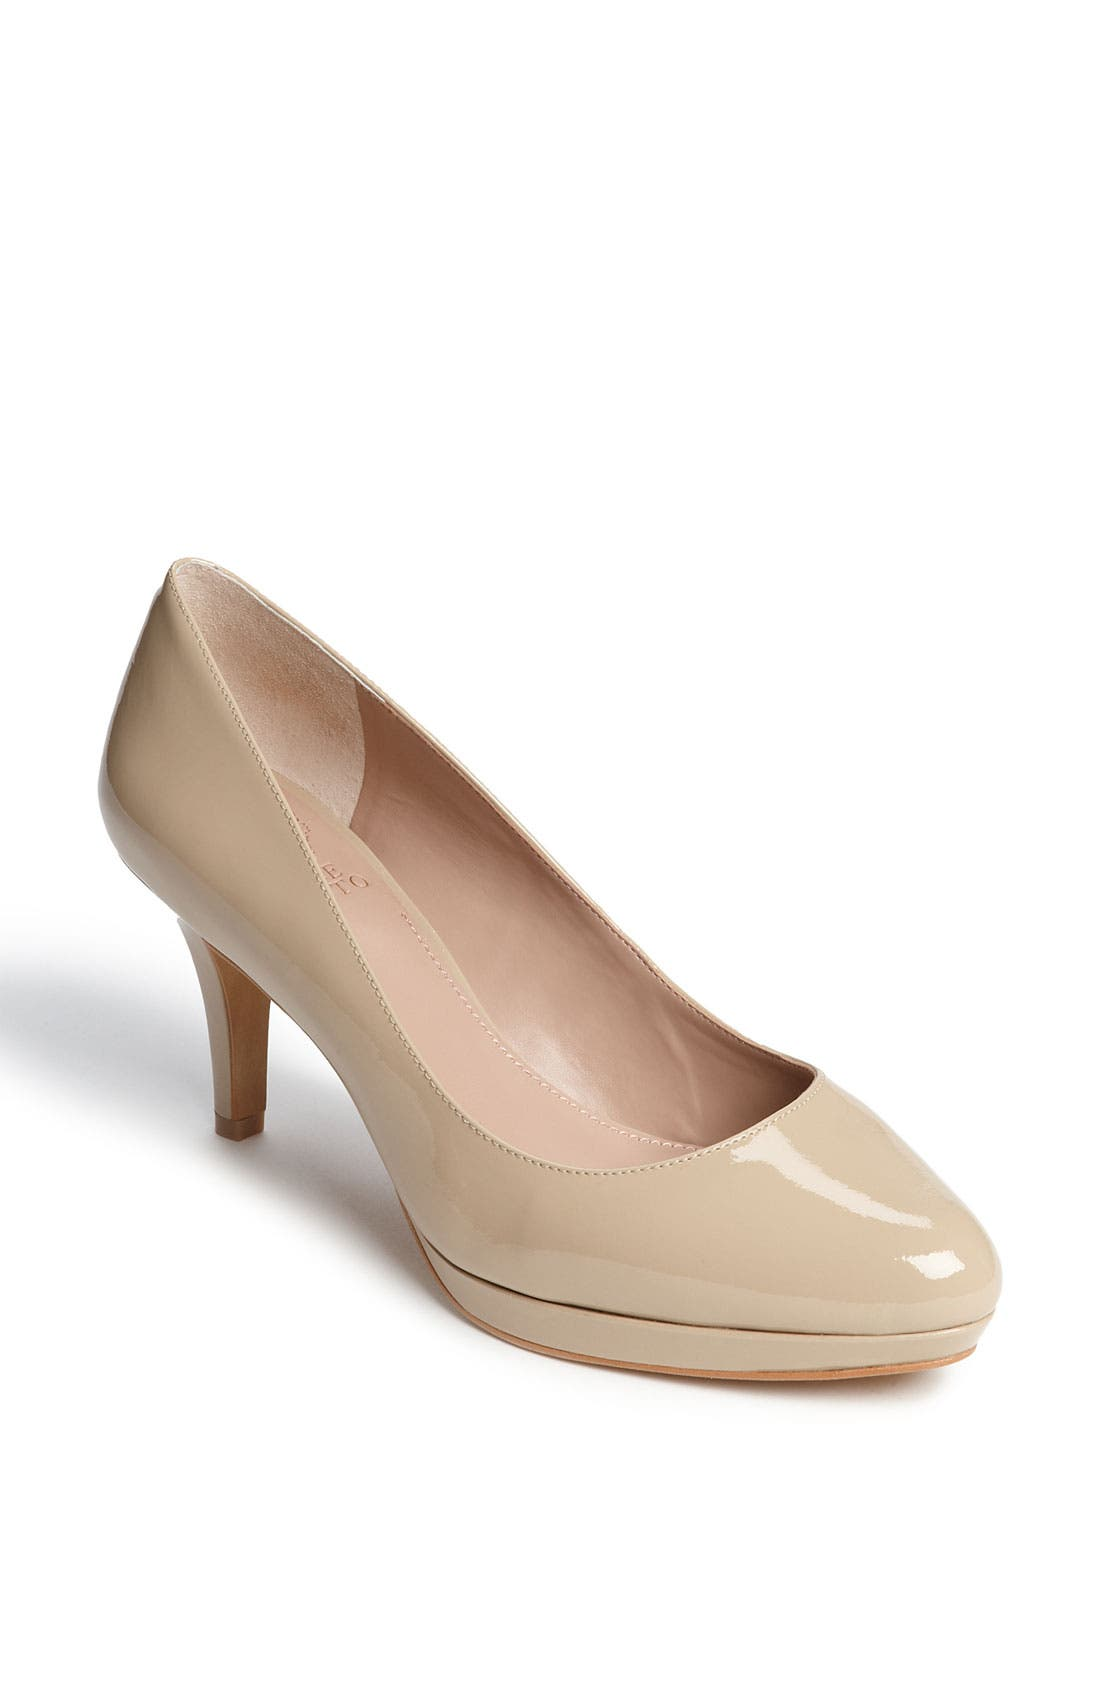 Alternate Image 1 Selected - Vince Camuto 'Desti' Pump